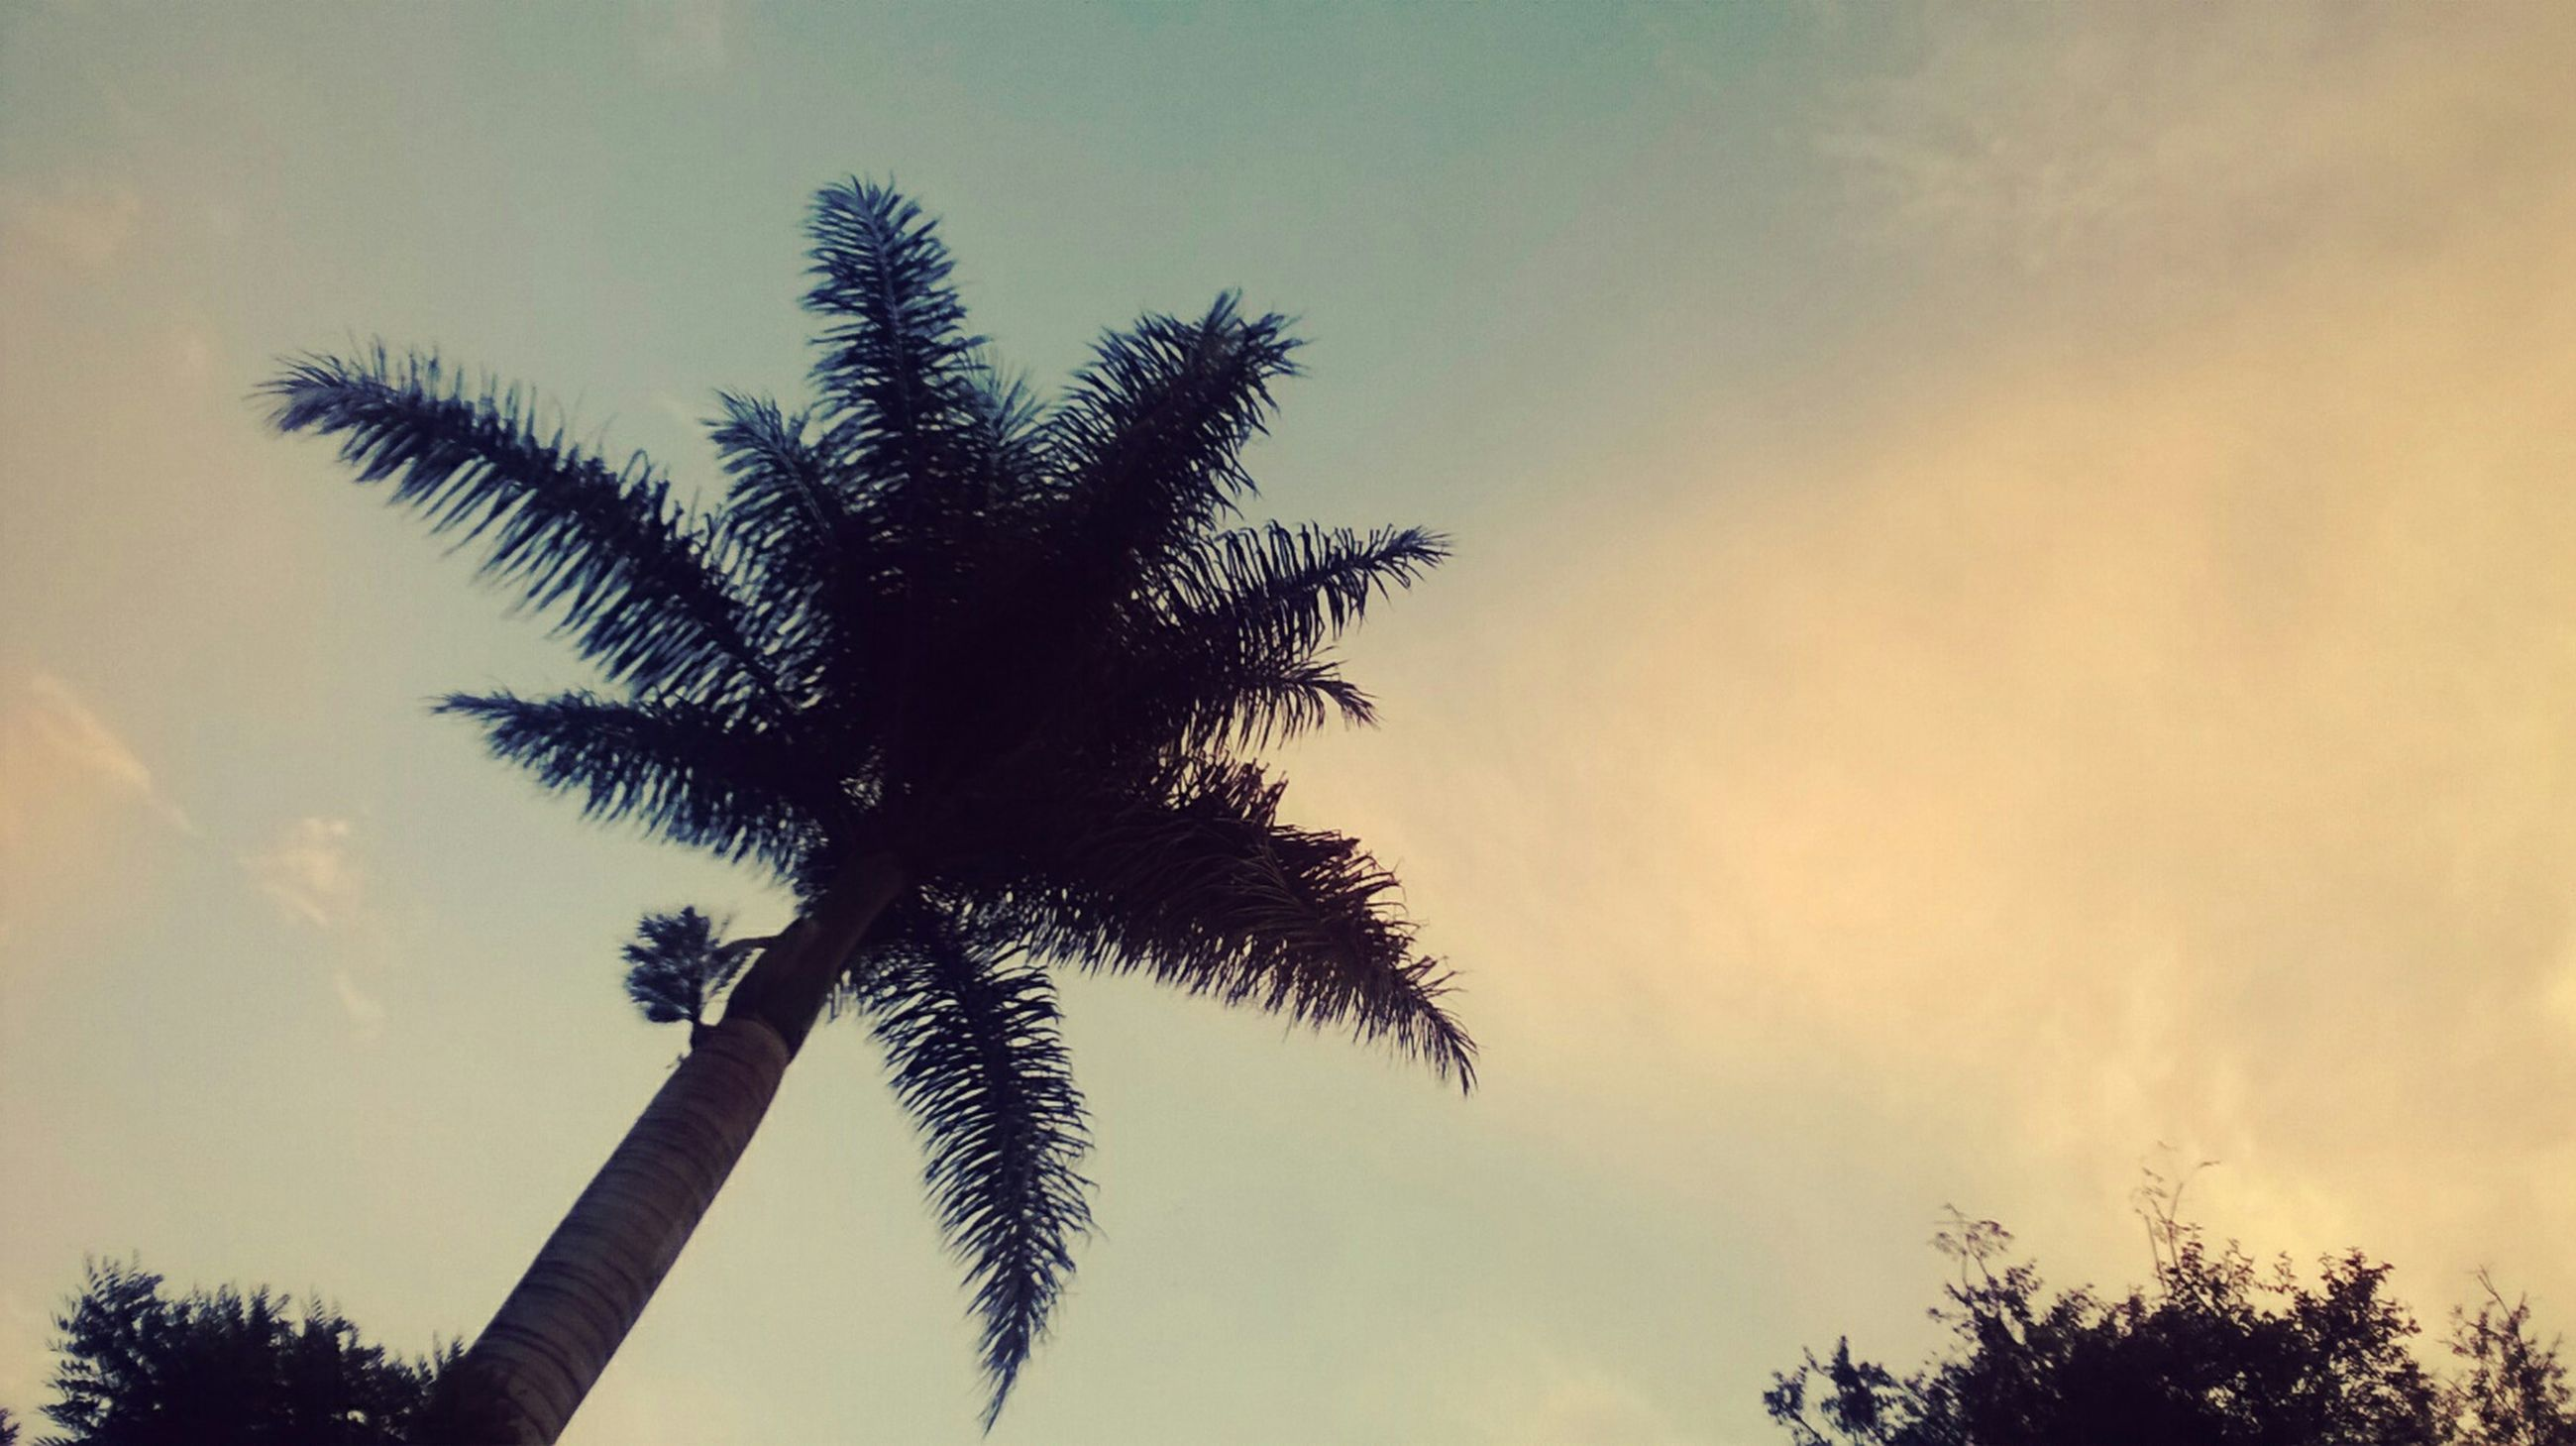 low angle view, palm tree, sky, tree, silhouette, tranquility, beauty in nature, nature, growth, cloud - sky, tree trunk, scenics, sunset, tranquil scene, cloud, cloudy, branch, tall - high, outdoors, no people